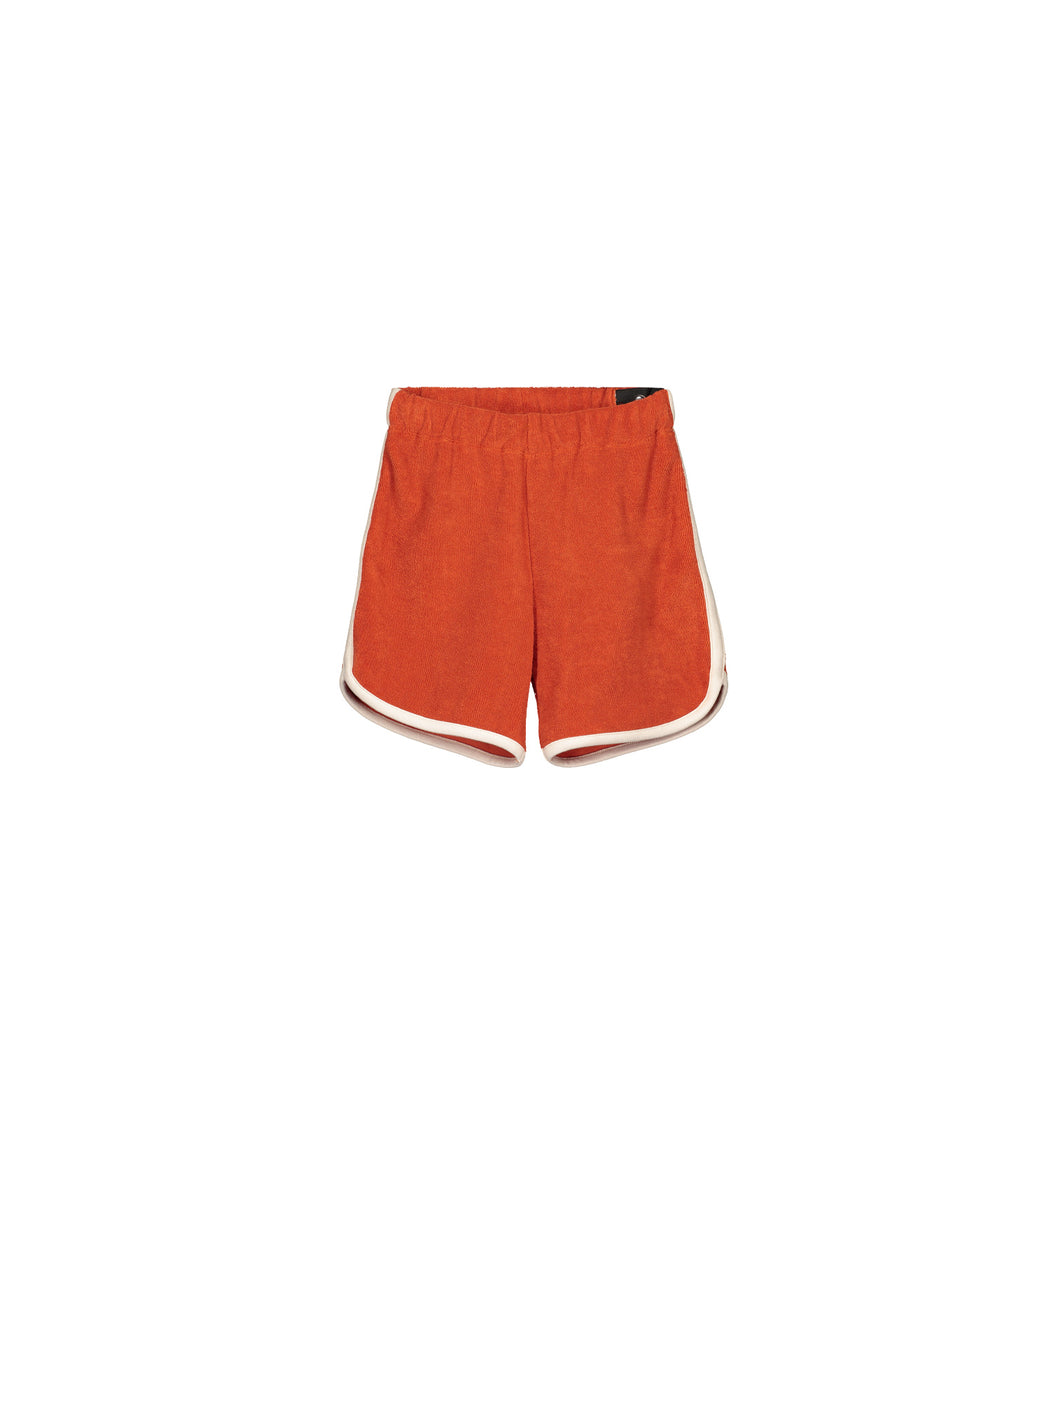 Mainio Expedition terry shorts